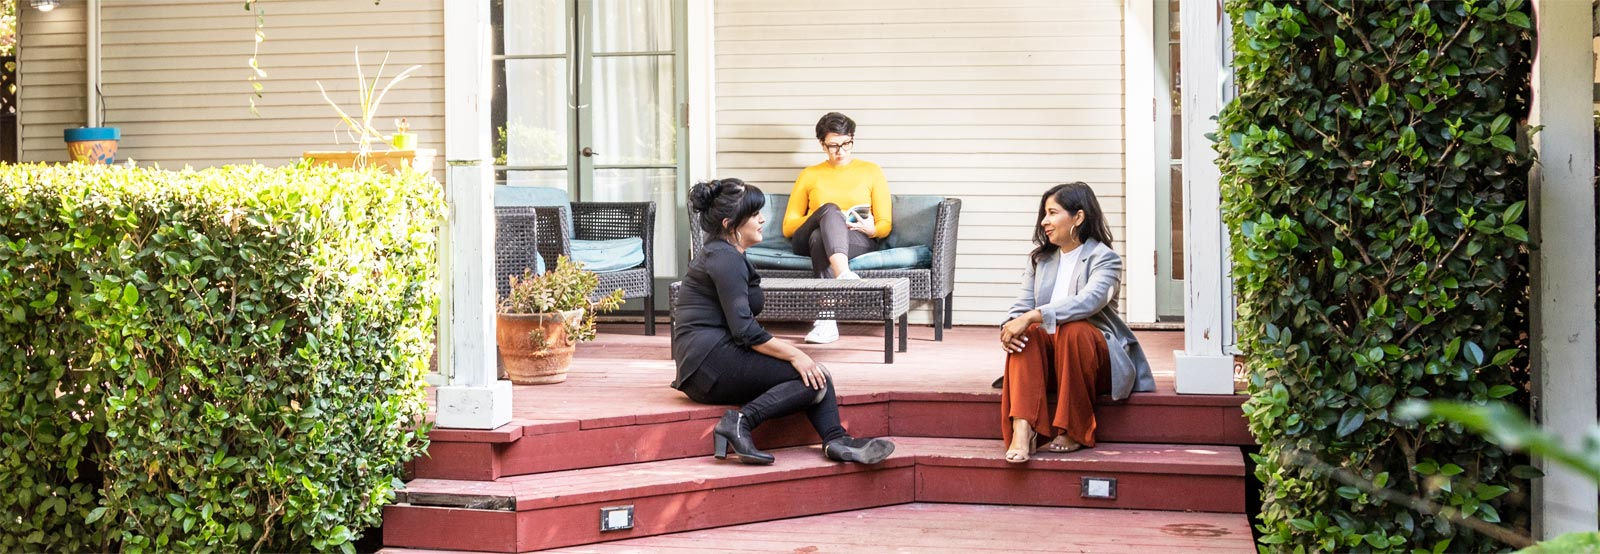 goodencenter-Womens-Mental-Health-Treatment-Facilities-photo-of-three-women-discussing-in-the-facility